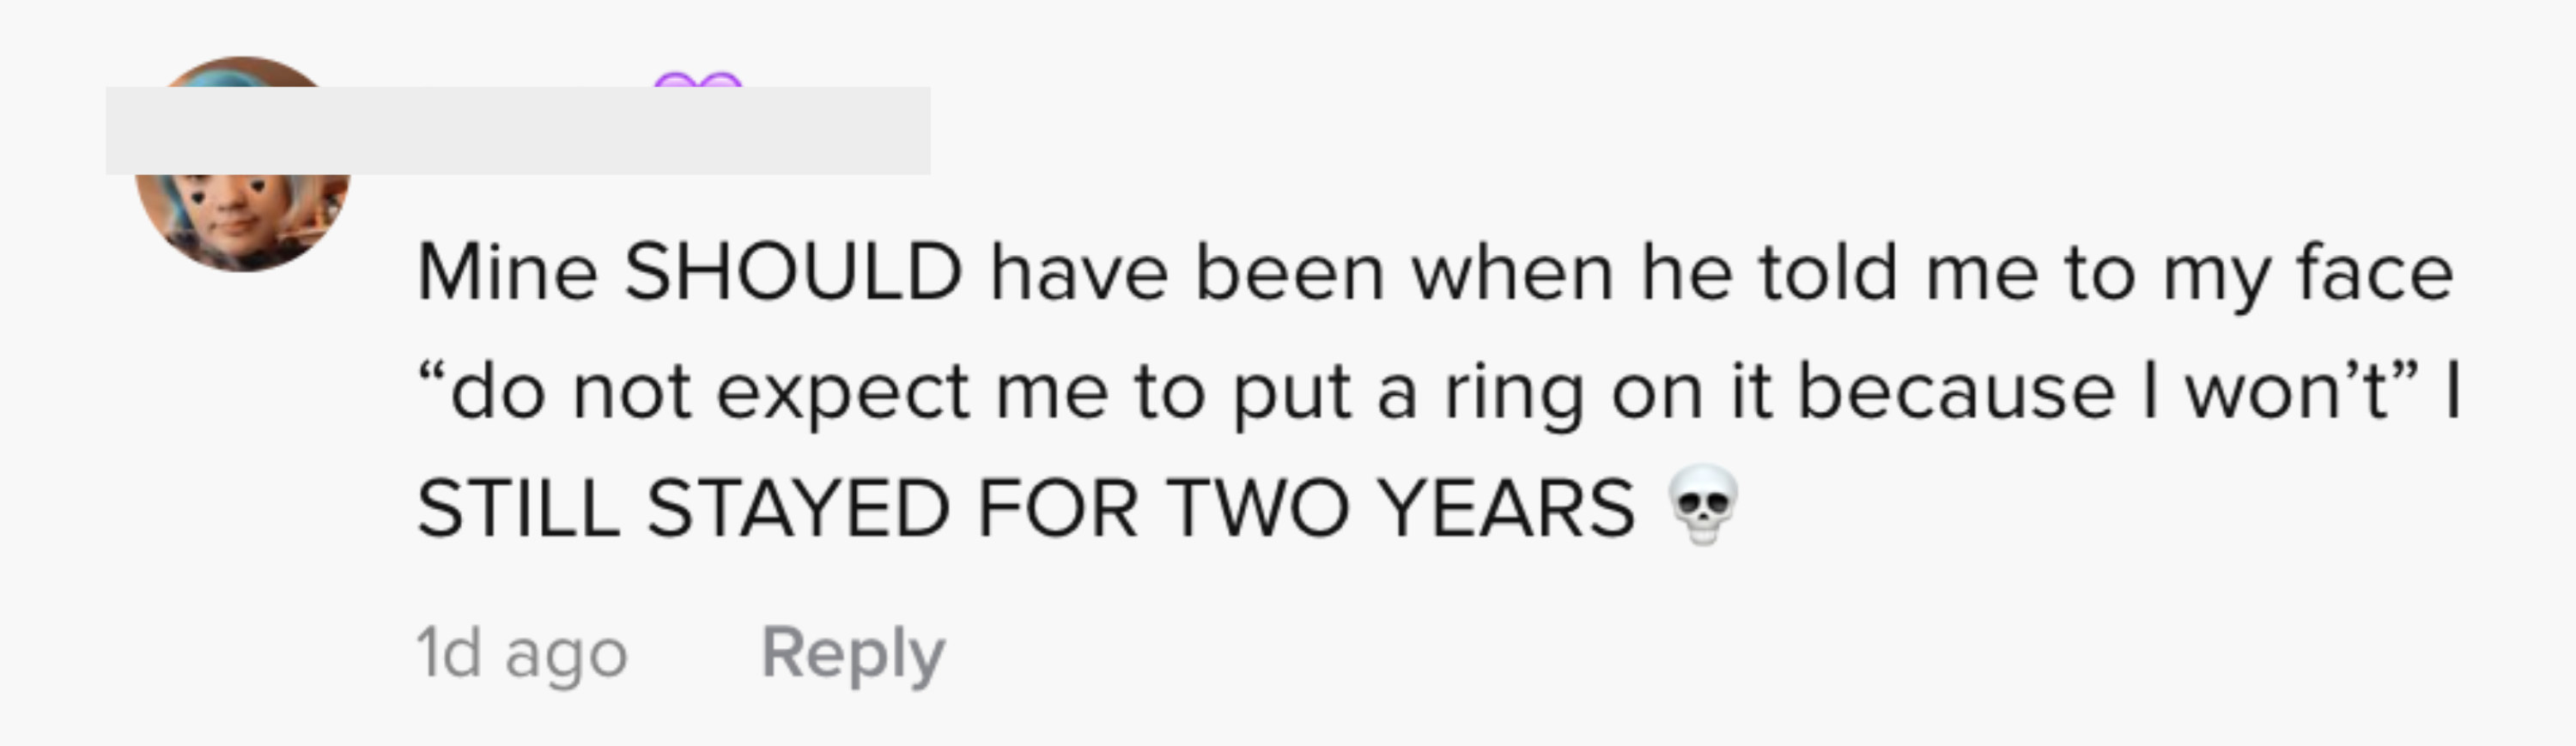 """He told me to my face, """"Do not expect me to put a ring on it because I won't"""""""